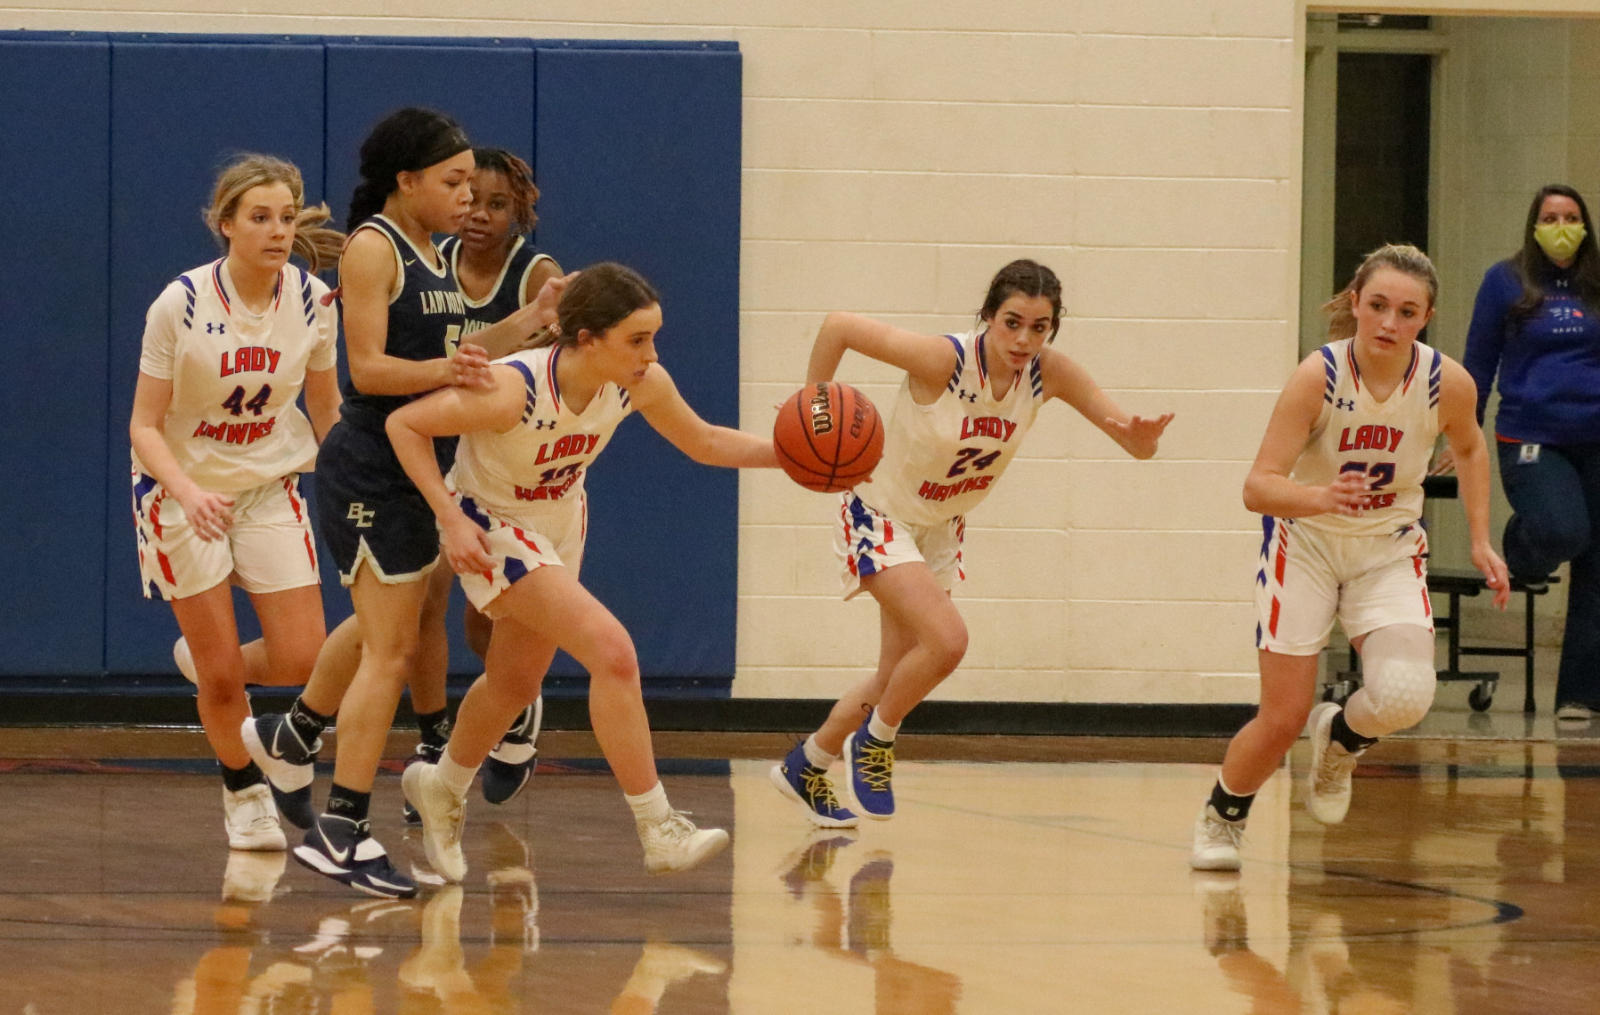 1.8.2021 (PHOTO GALLERY):  Hanahan Varsity Girls BKB vs Battery Creek HS – Photos by Cyril Samonte